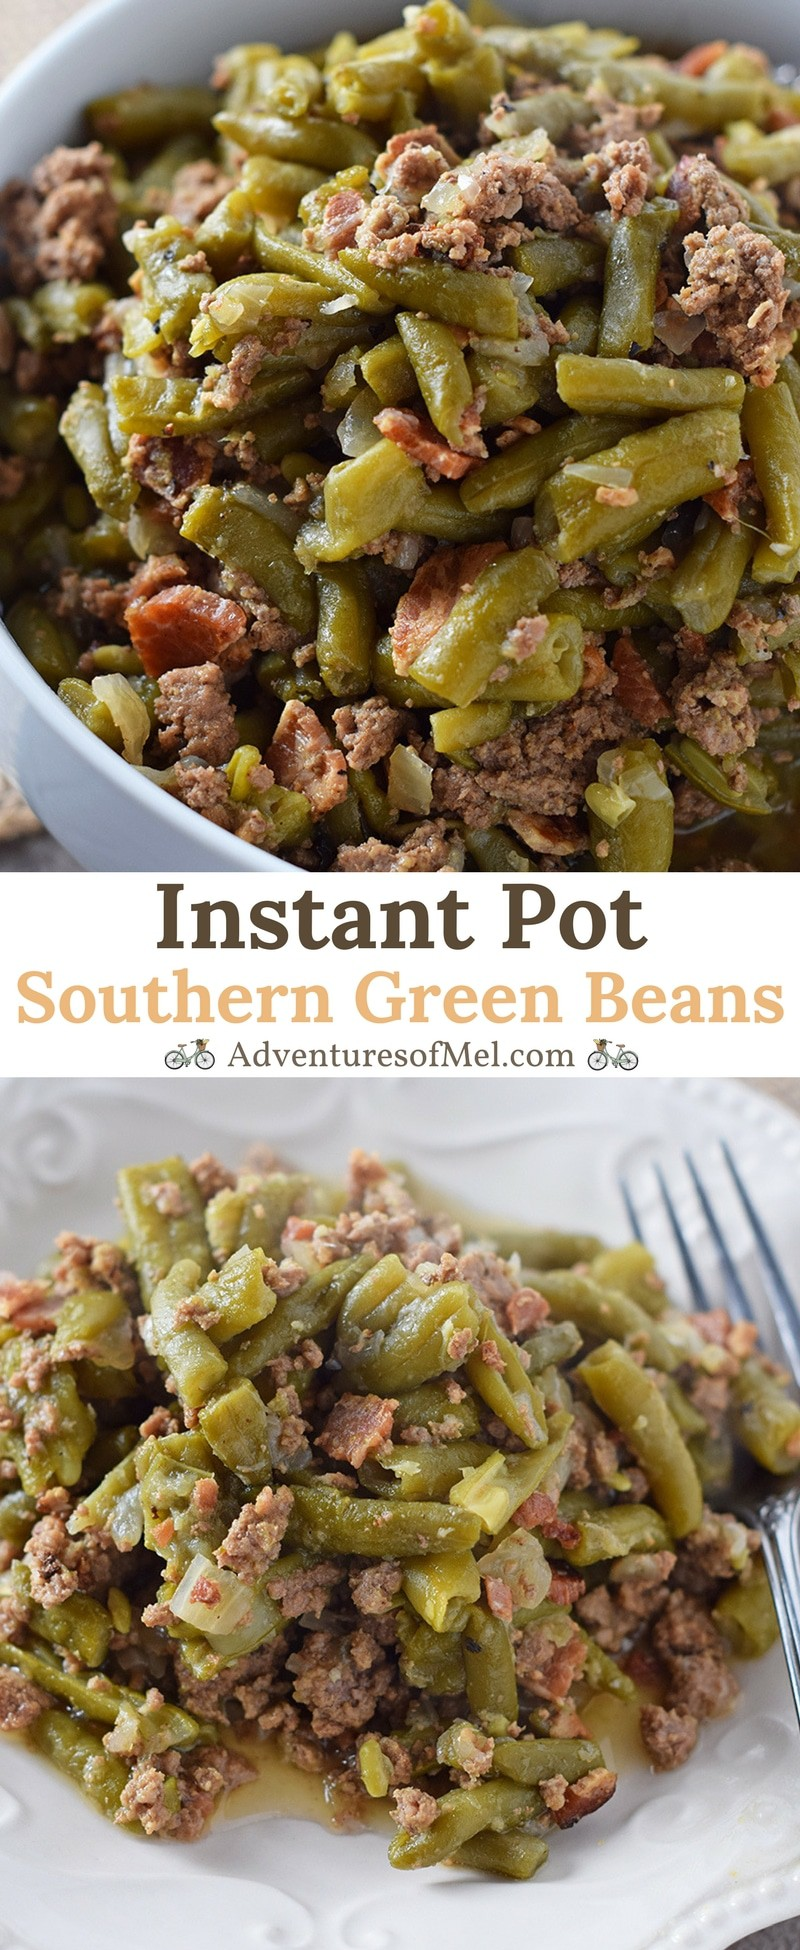 Southern Green Beans, made with bacon, onion, and ground beef in the Instant Pot. Delicious side dish recipe, perfect for holidays or weeknight meals.